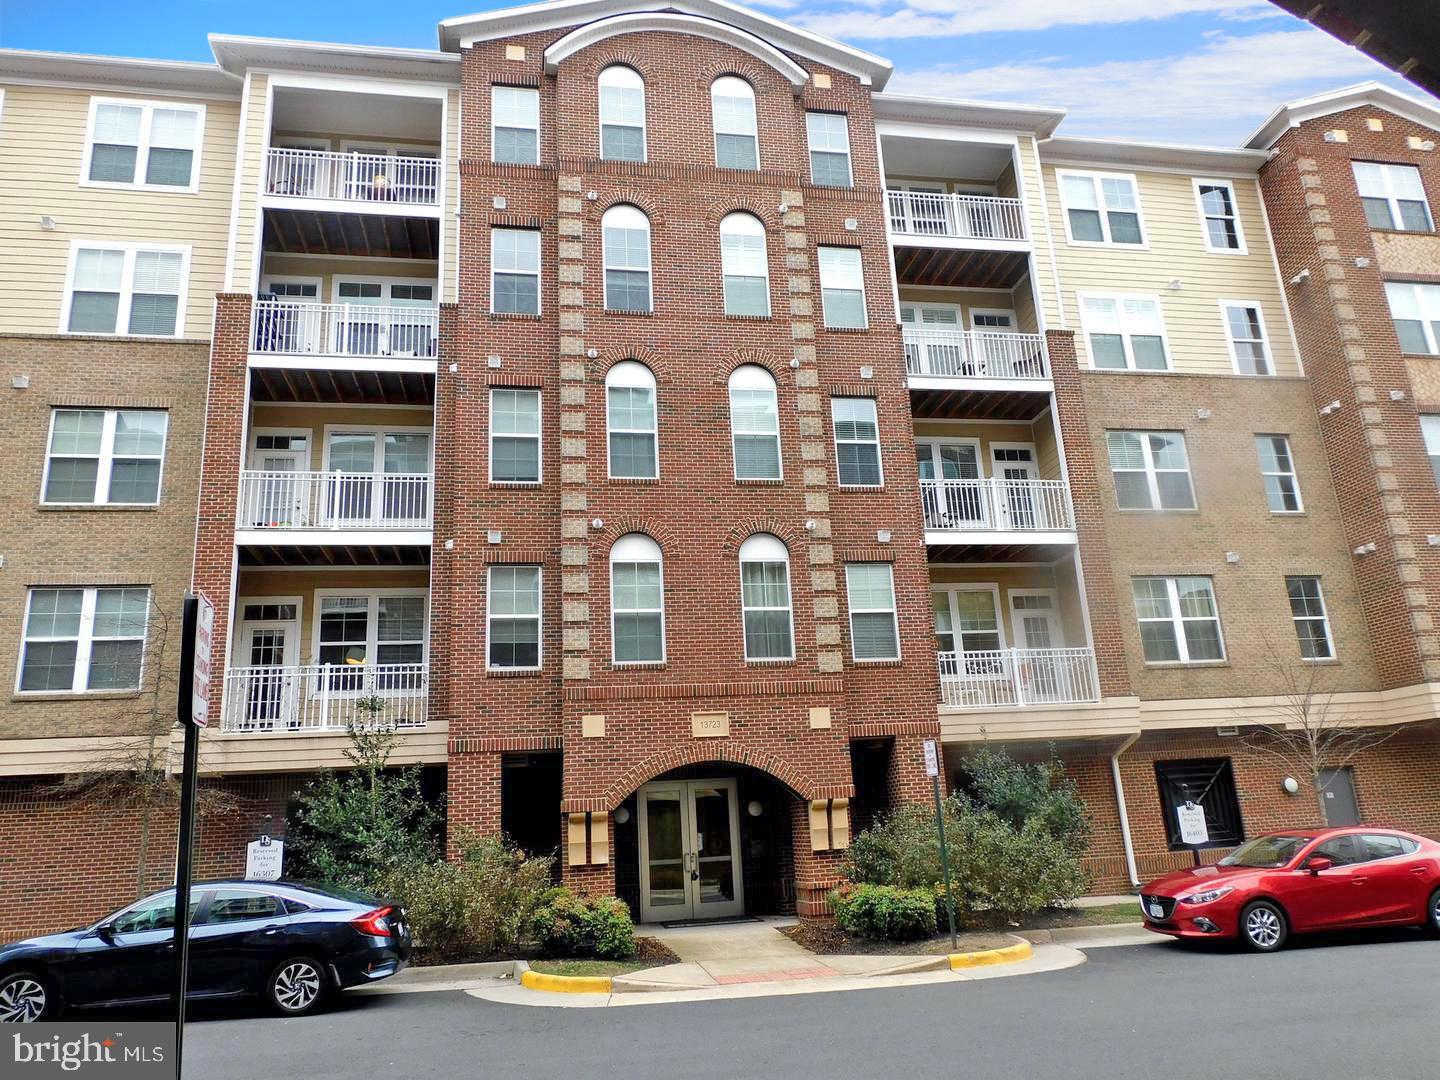 13723 Neil Armstrong Avenue #206, Herndon, VA 20171 now has a new price of $405,000!